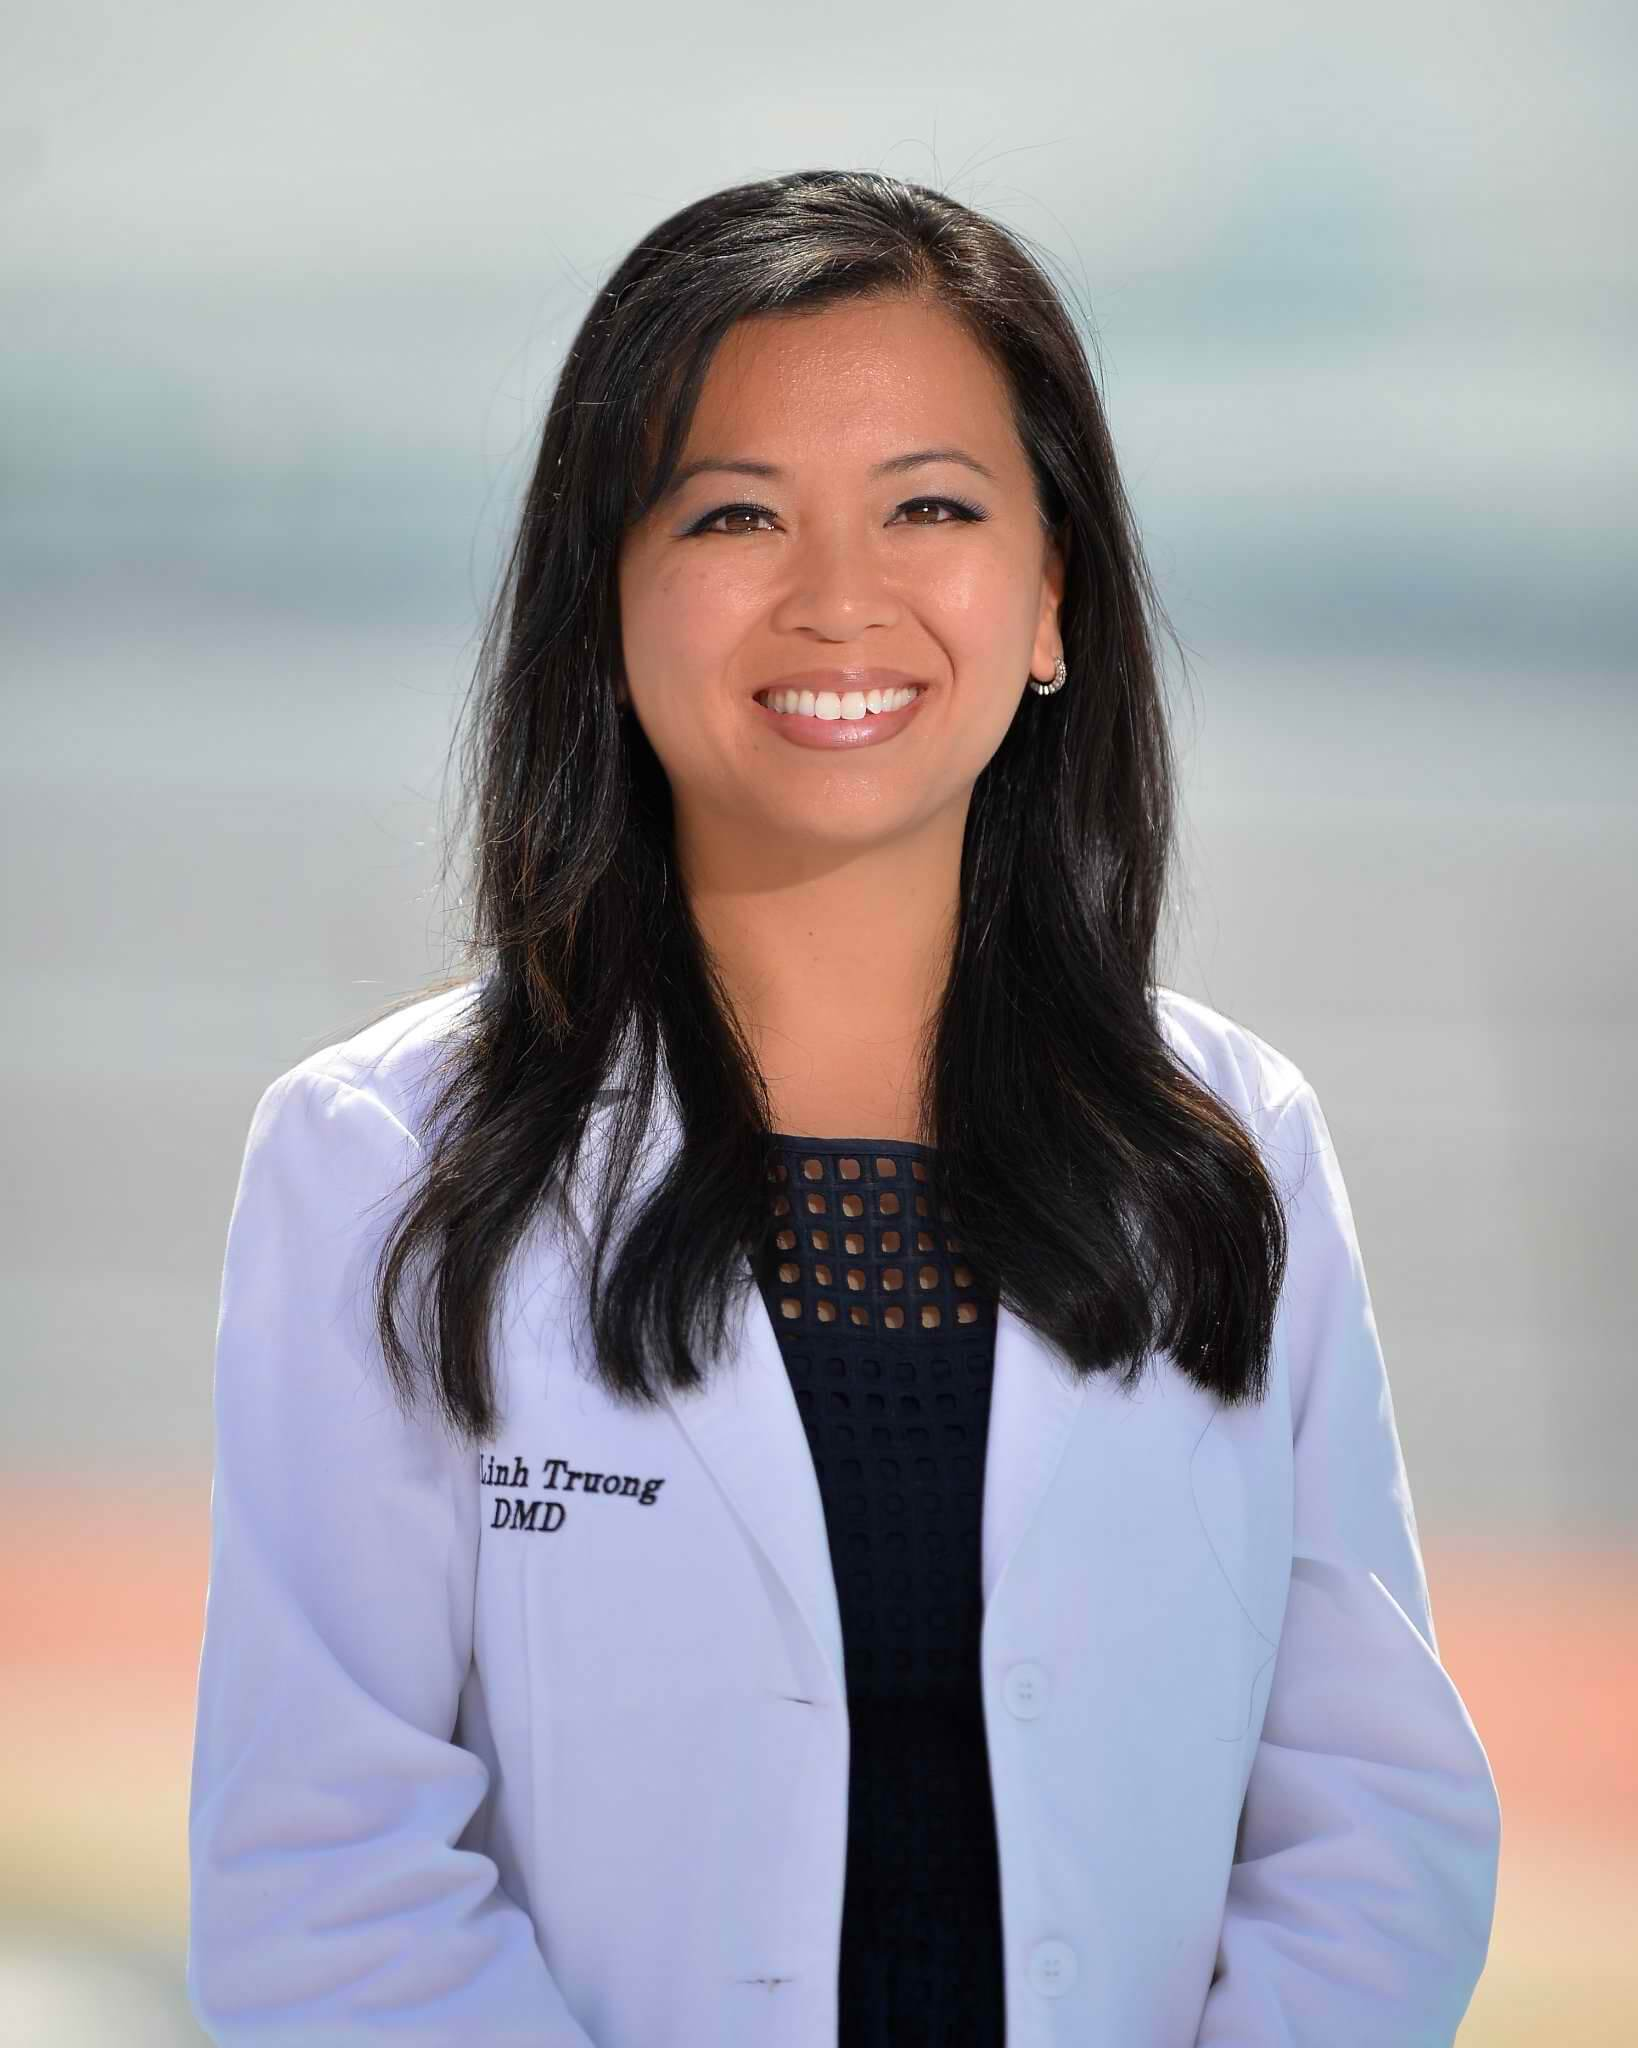 Dr. Linh M. Truong, DMD